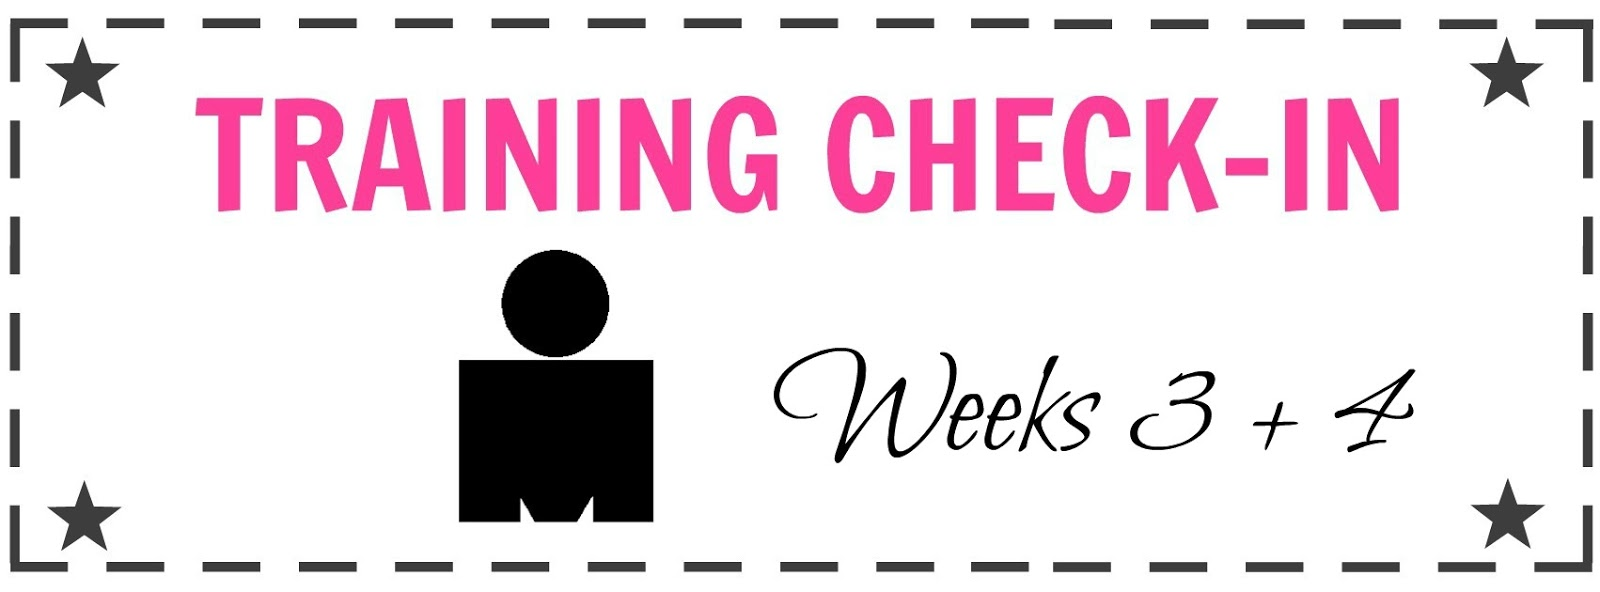 Training Check-in: Ironman Weeks 3 & 4